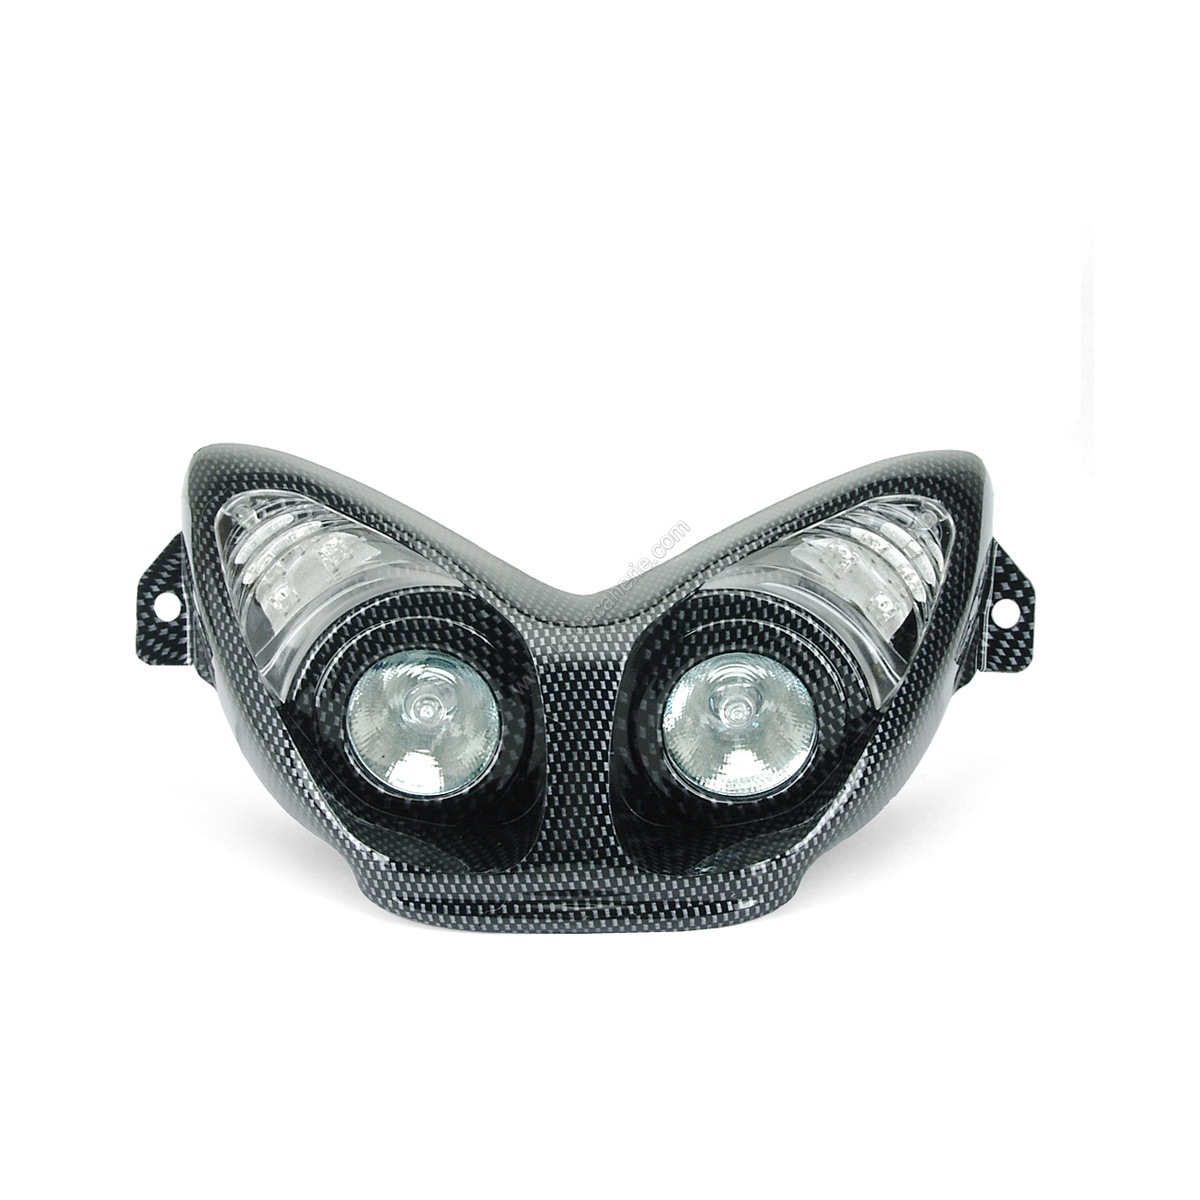 masque-double-optiqu-503331fd4a398e55820